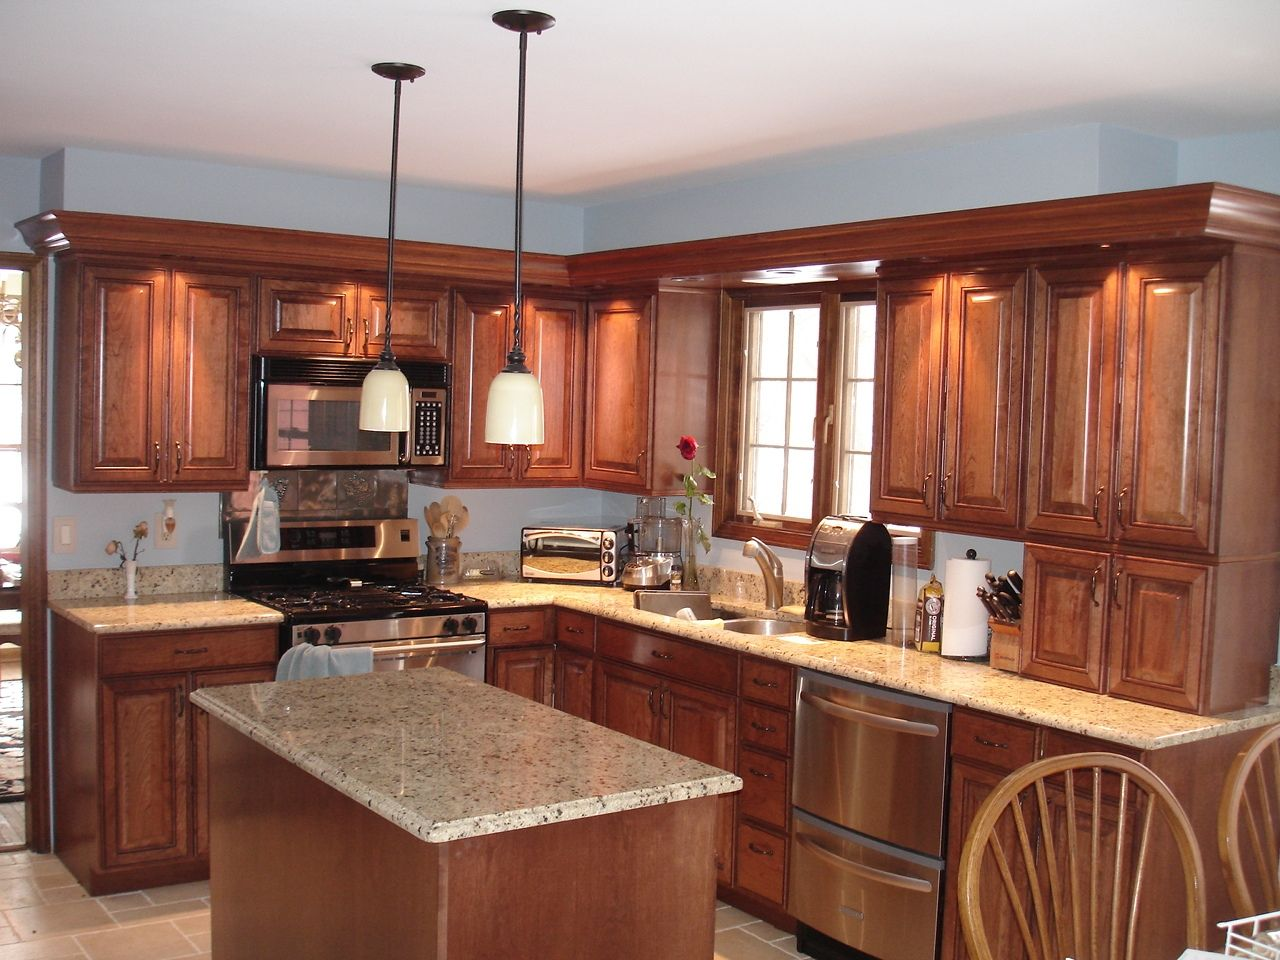 10x12 kitchens hand made kitchen remodel by customcraft homes millwork custommade on i kitchen remodel id=88730